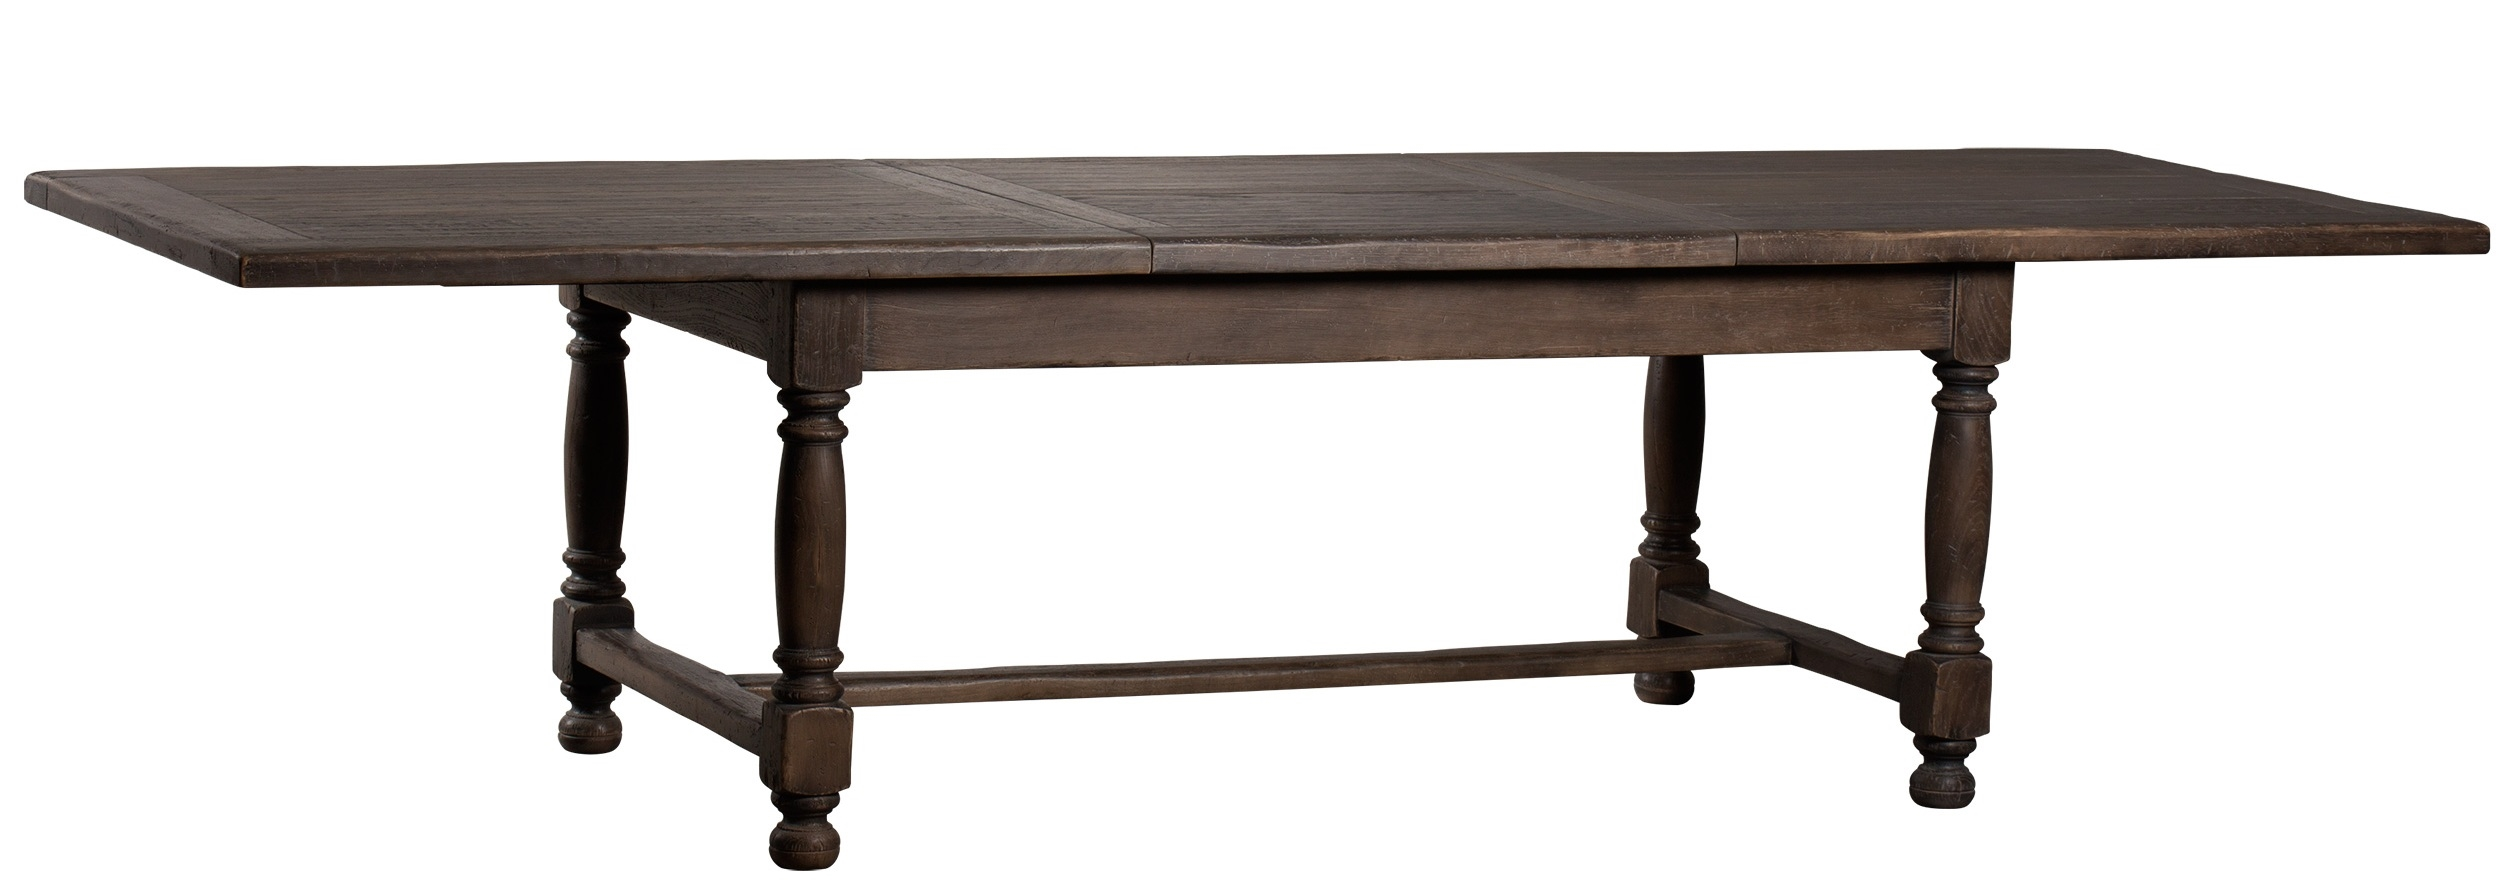 Luxury extending dining table french country home collection for Expensive dining tables